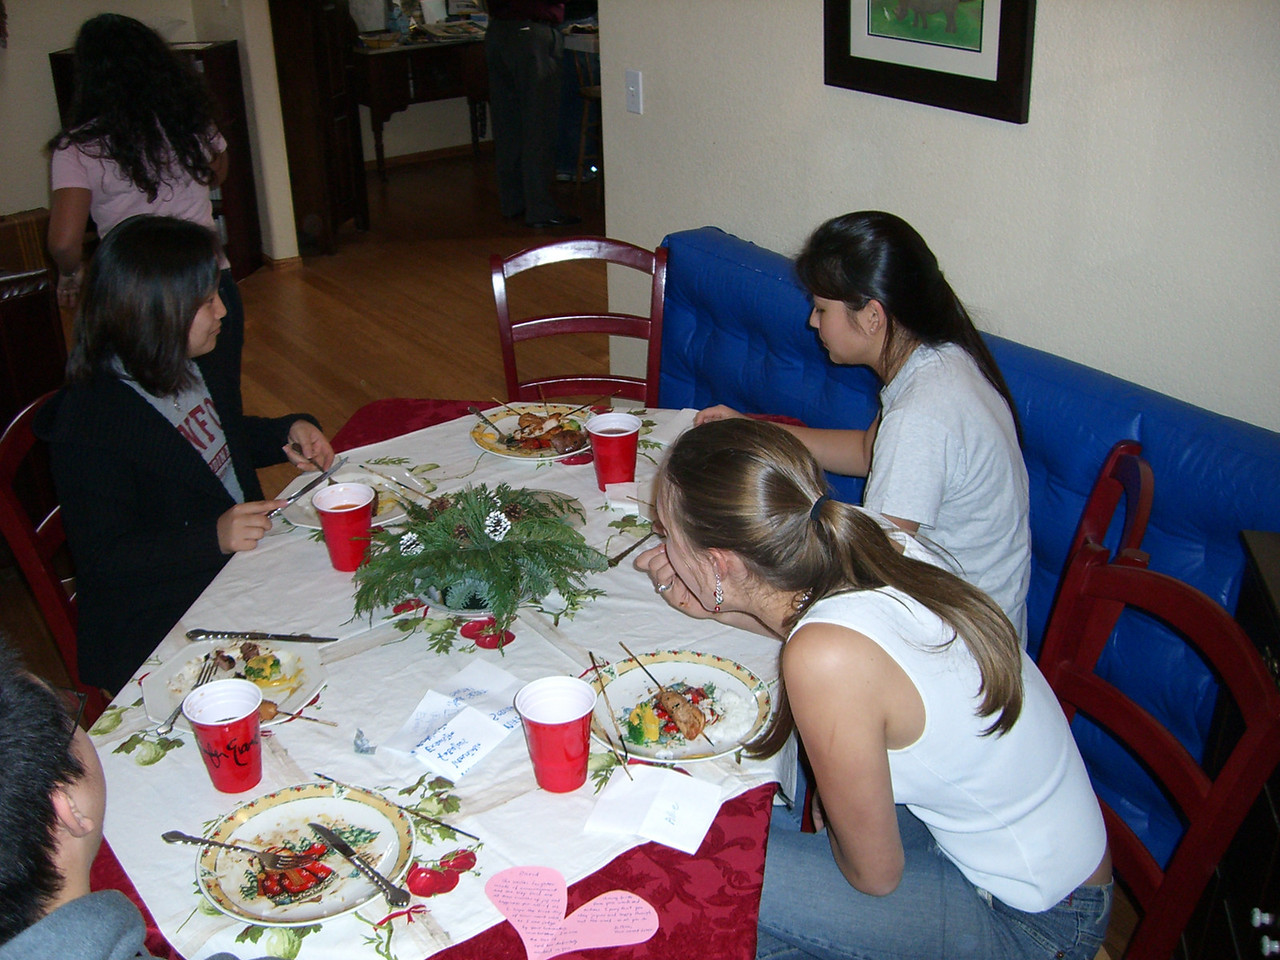 2005 12 18 Sun - Lake Ave Church - Esther Kang, Jenn Kim, & Allie Dunworth grub